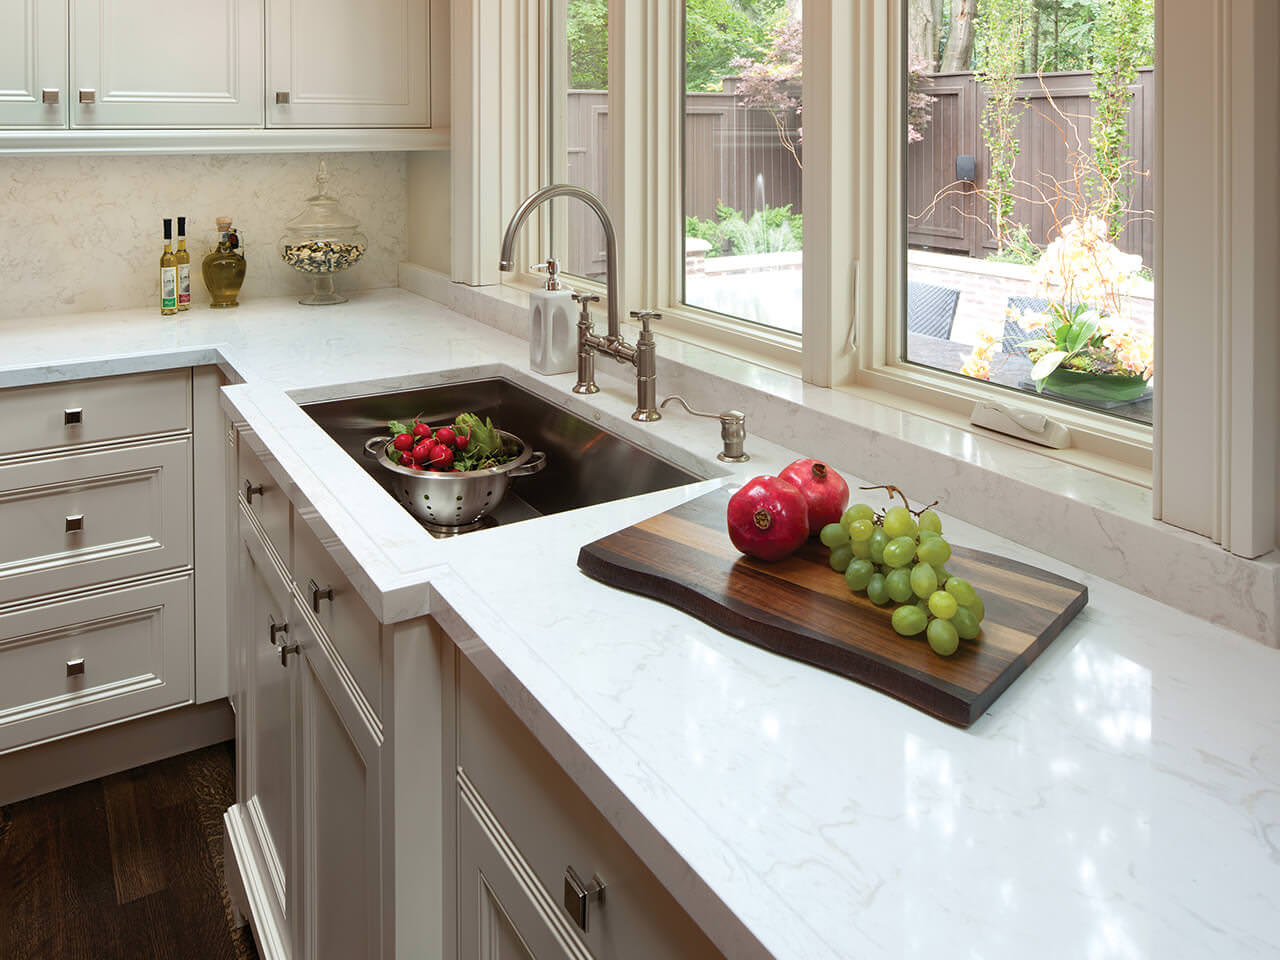 Cambria Torquay Quartz Countertops Kitchen Sink